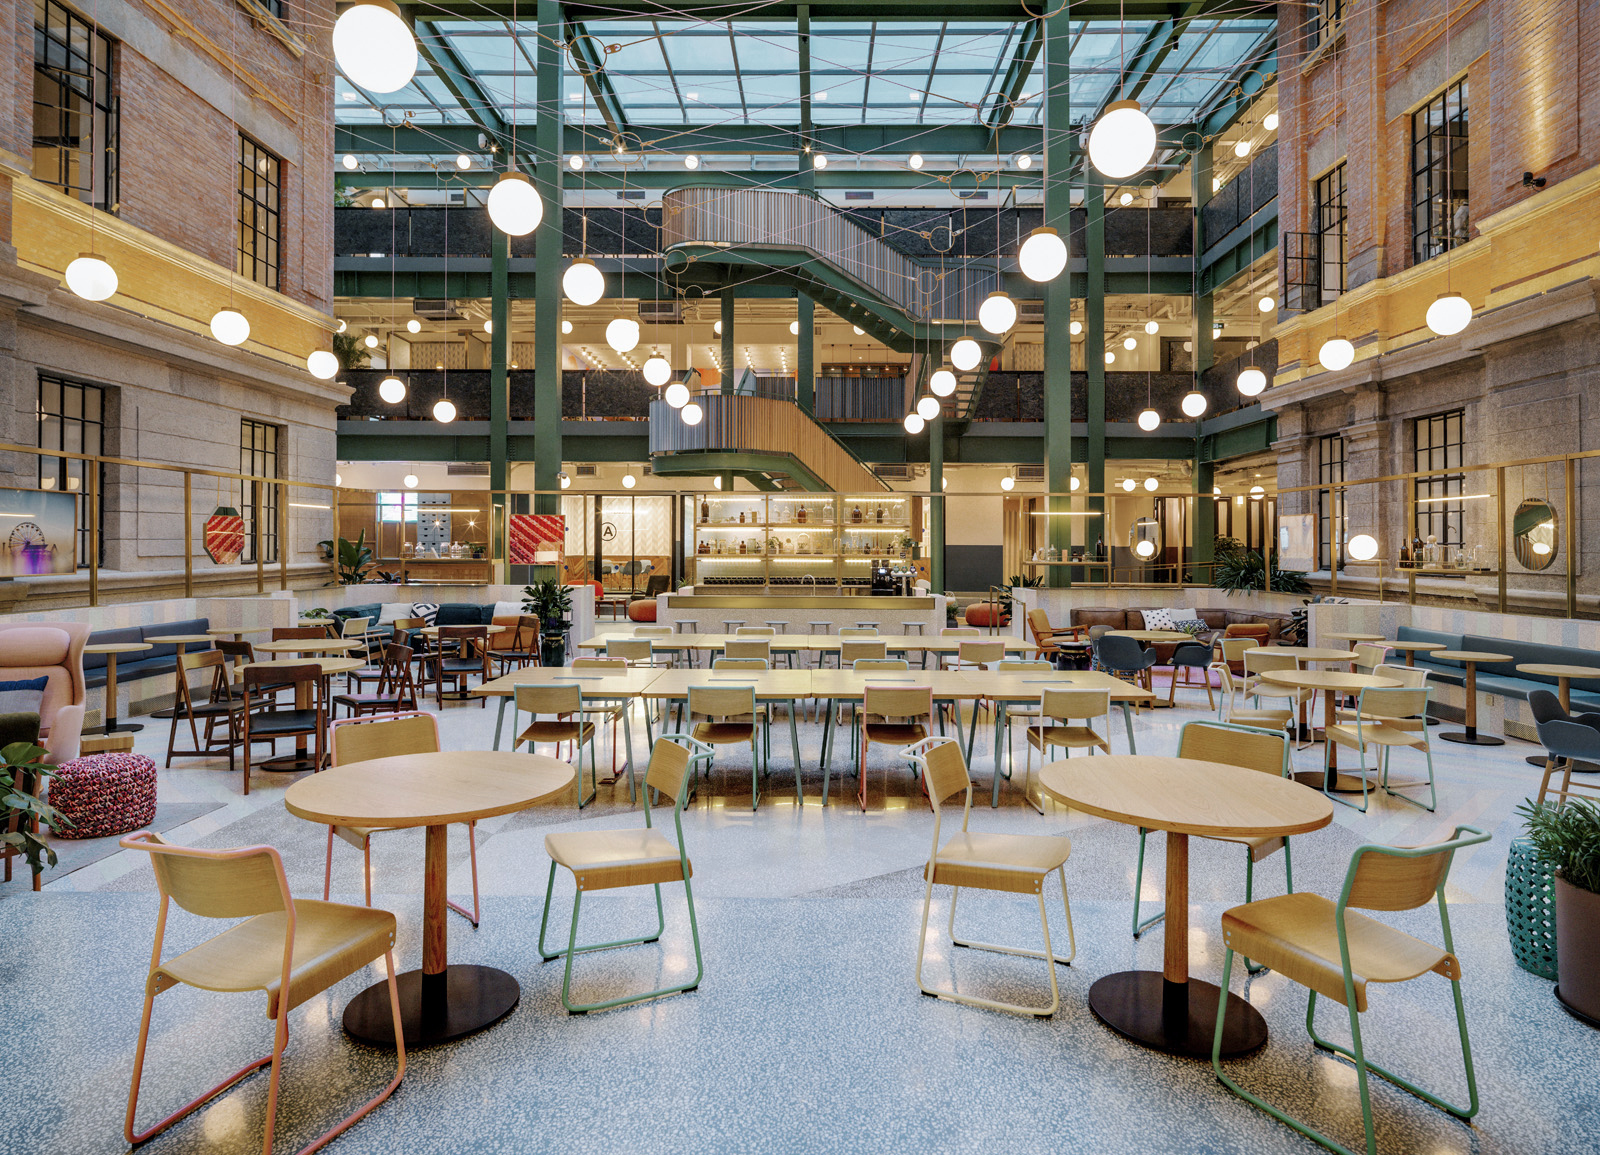 Chicago Kitchen Design Wework Weihai Lu Linehouse Archdaily